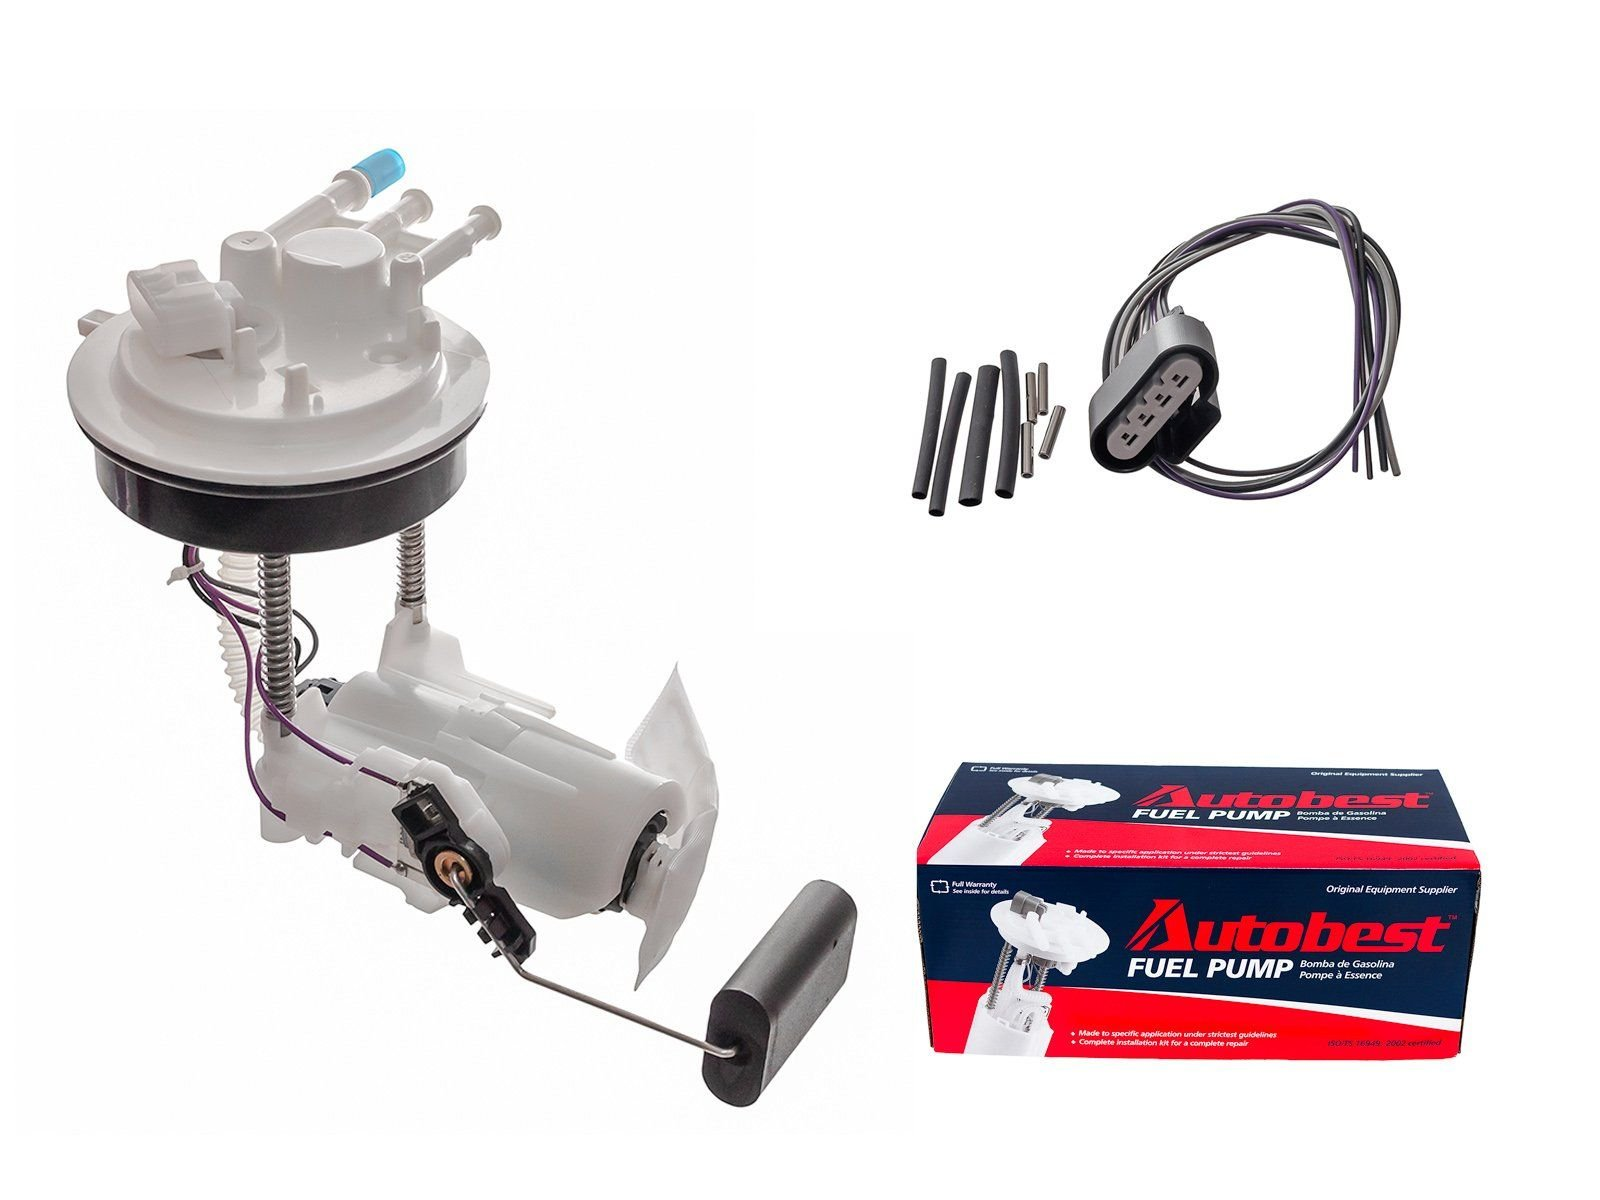 Gmc Yukon Xl 2500 Fuel Pump Module Assembly Replacement Acdelco 4 Wire Harness W 1 Electrical Connector On The For Rear Tank Code Tdf Recommend To Replace Wiring Fw901 Verify